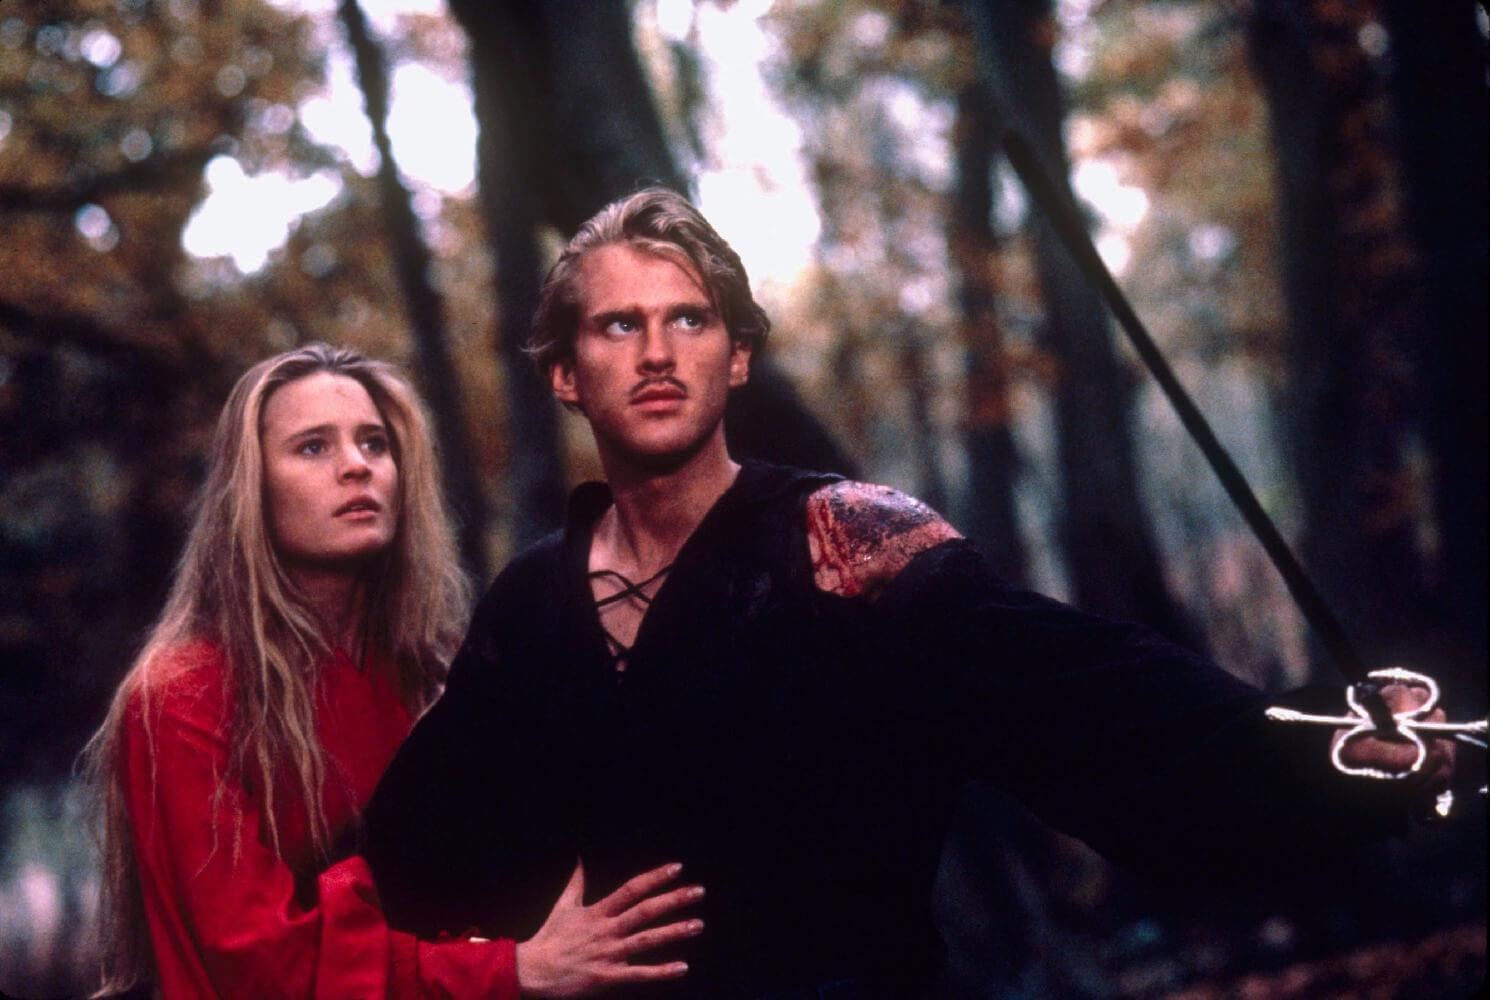 photo: Quicklist 11 Princess Bride